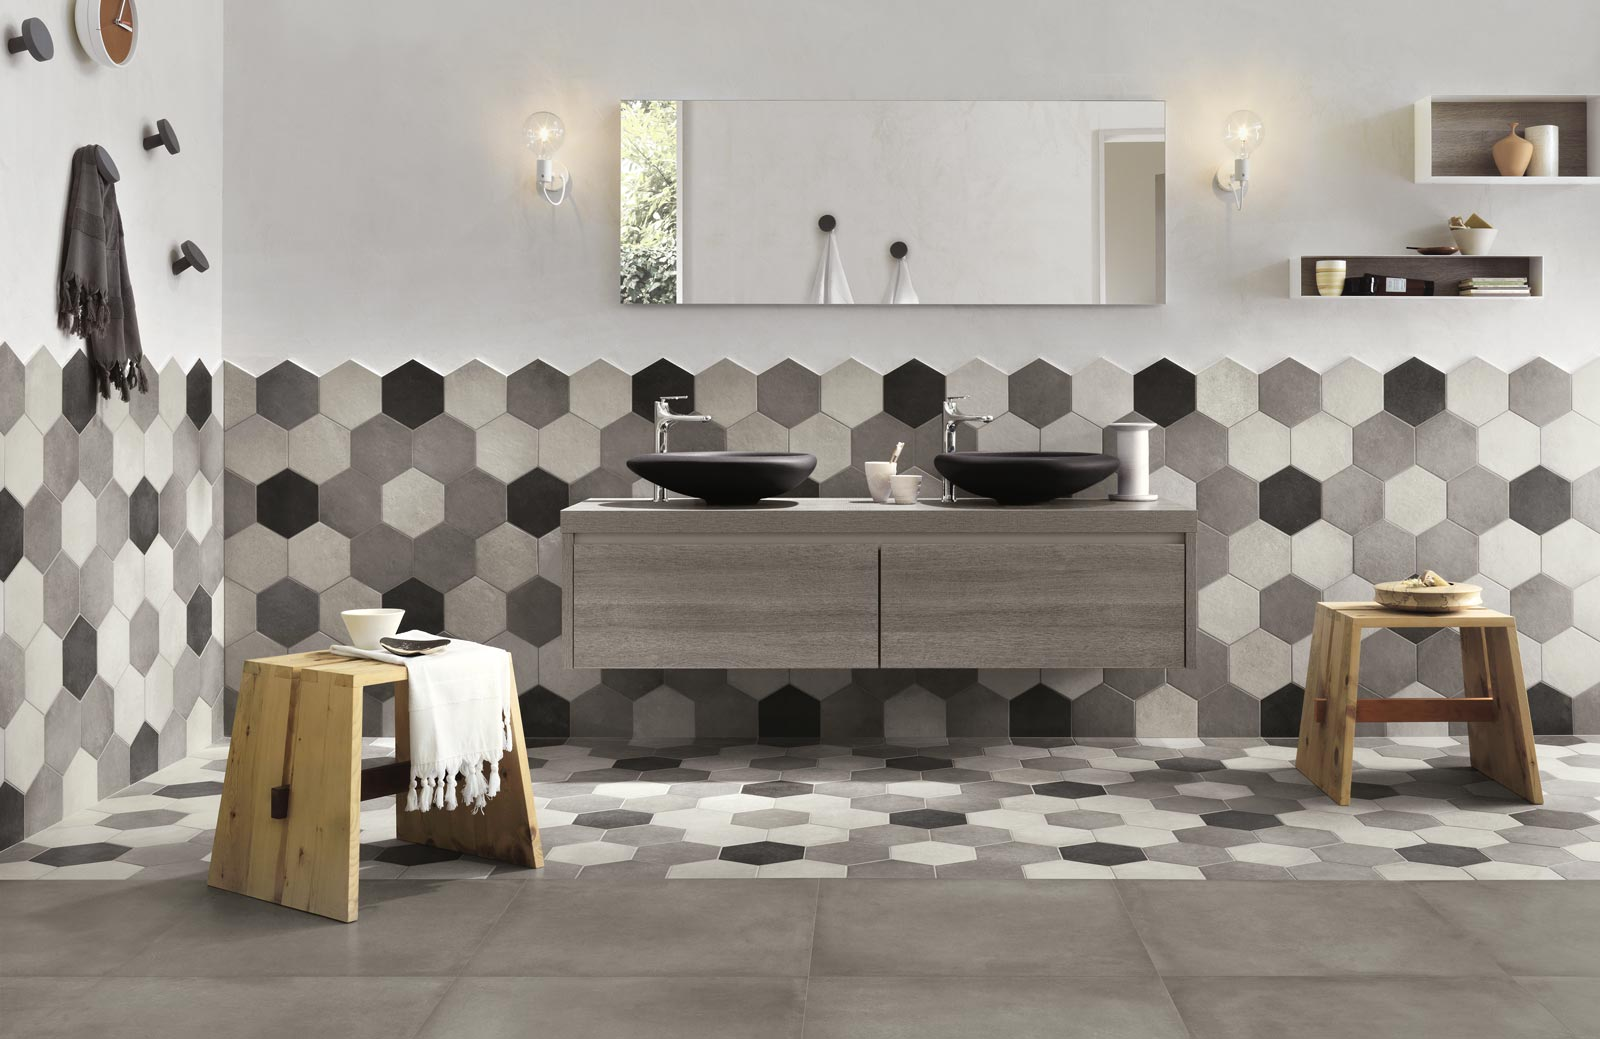 Bathroom Walls Hexagon Tiles